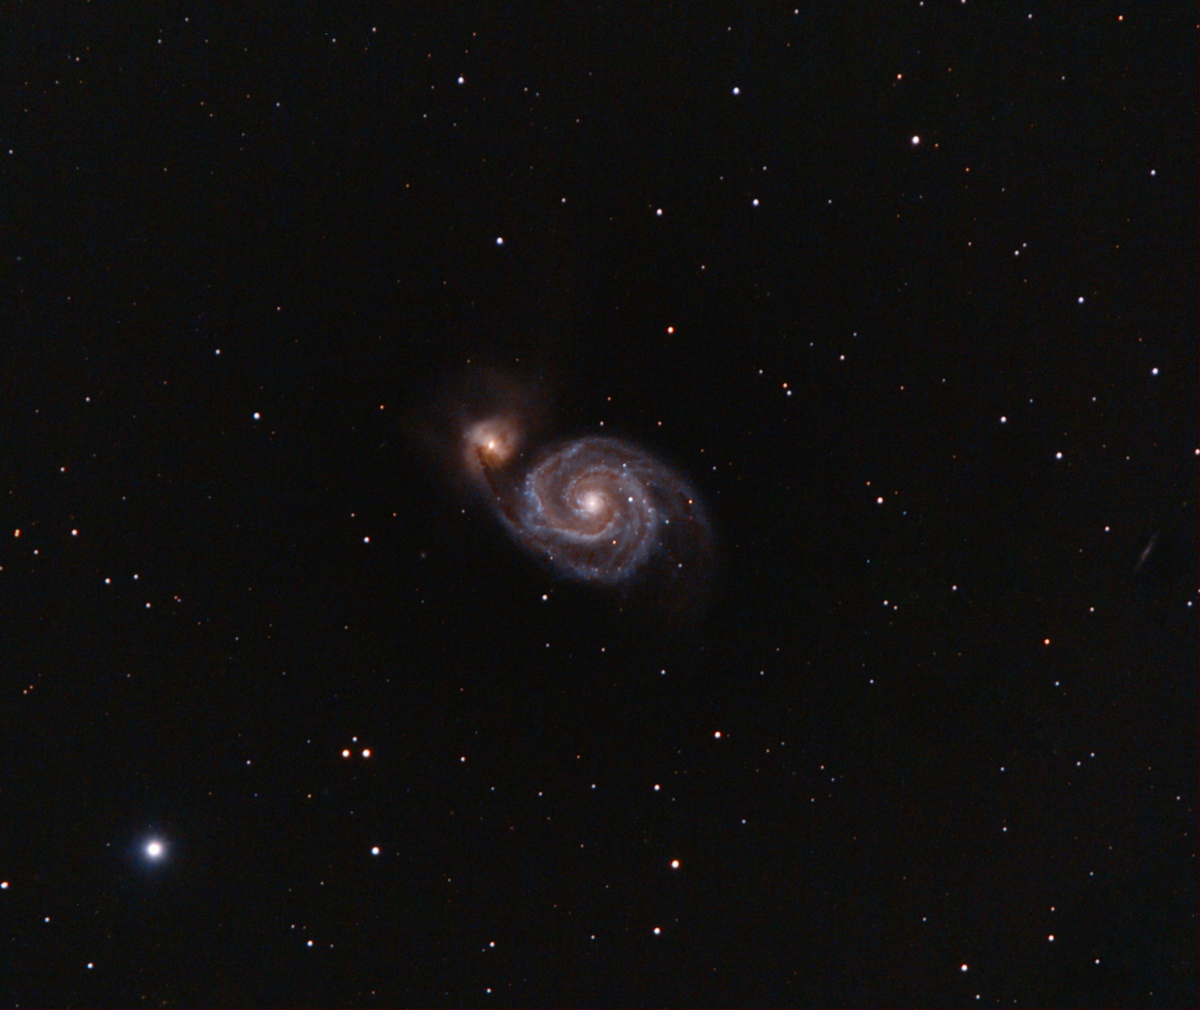 M51-Whirpool Galaxy